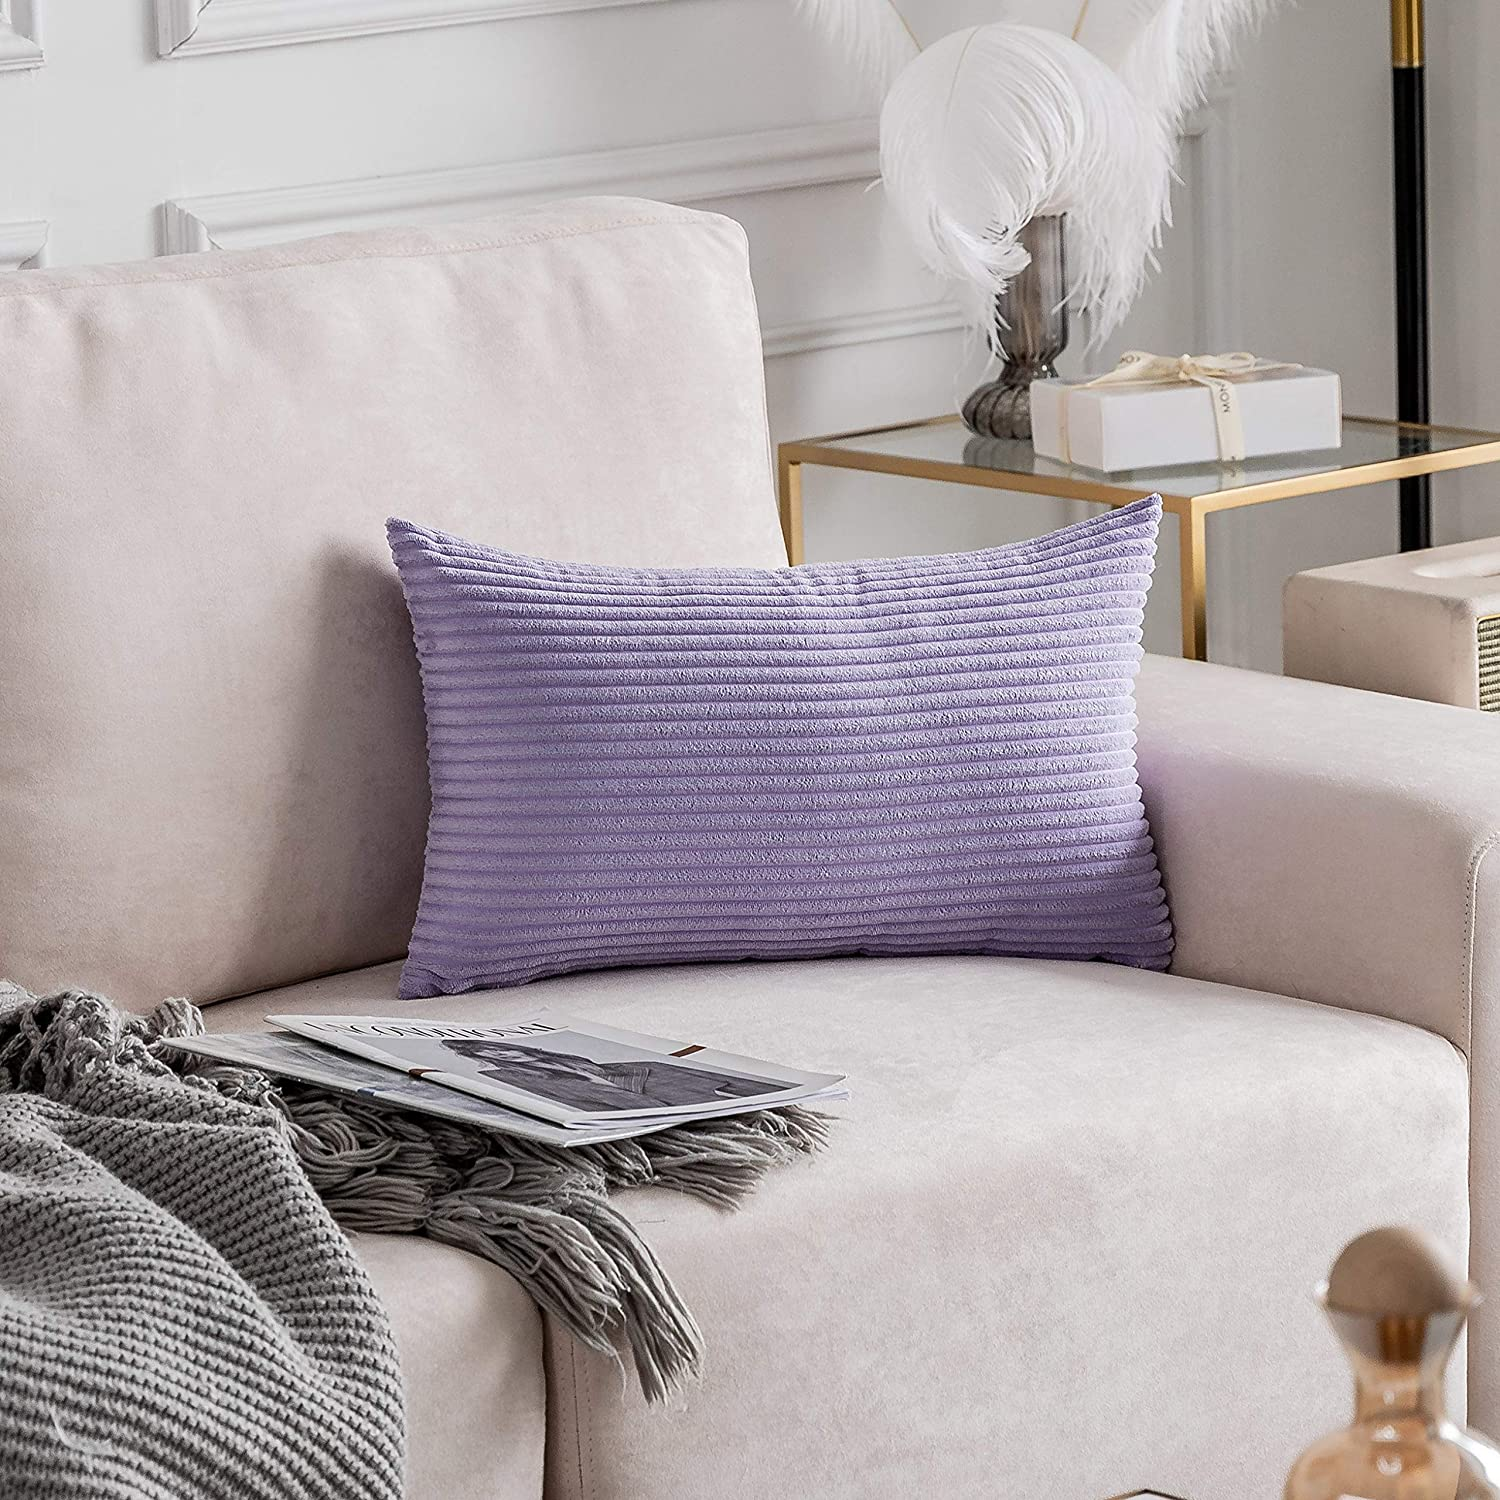 Home Brilliant Soft Throw Pillows Cover Solid Striped Velvet Lumber Rectangle Decorative Pillowcase for Man Living Room, Lavender 12x20 inches(30x50 cm)